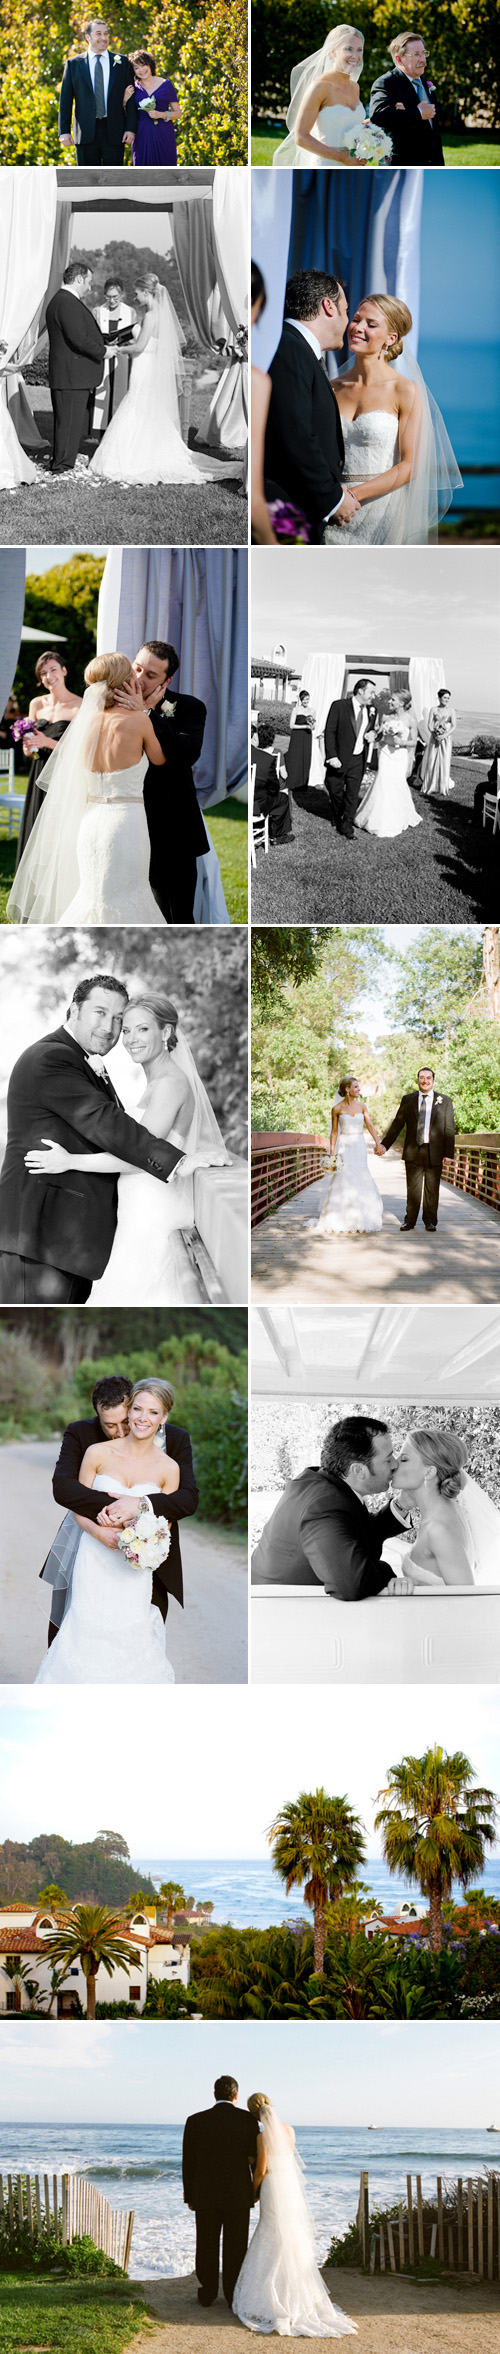 Santa Barbara, California wedding at the Bacara Resort by Yvette Roman Photography and La Fete Weddings